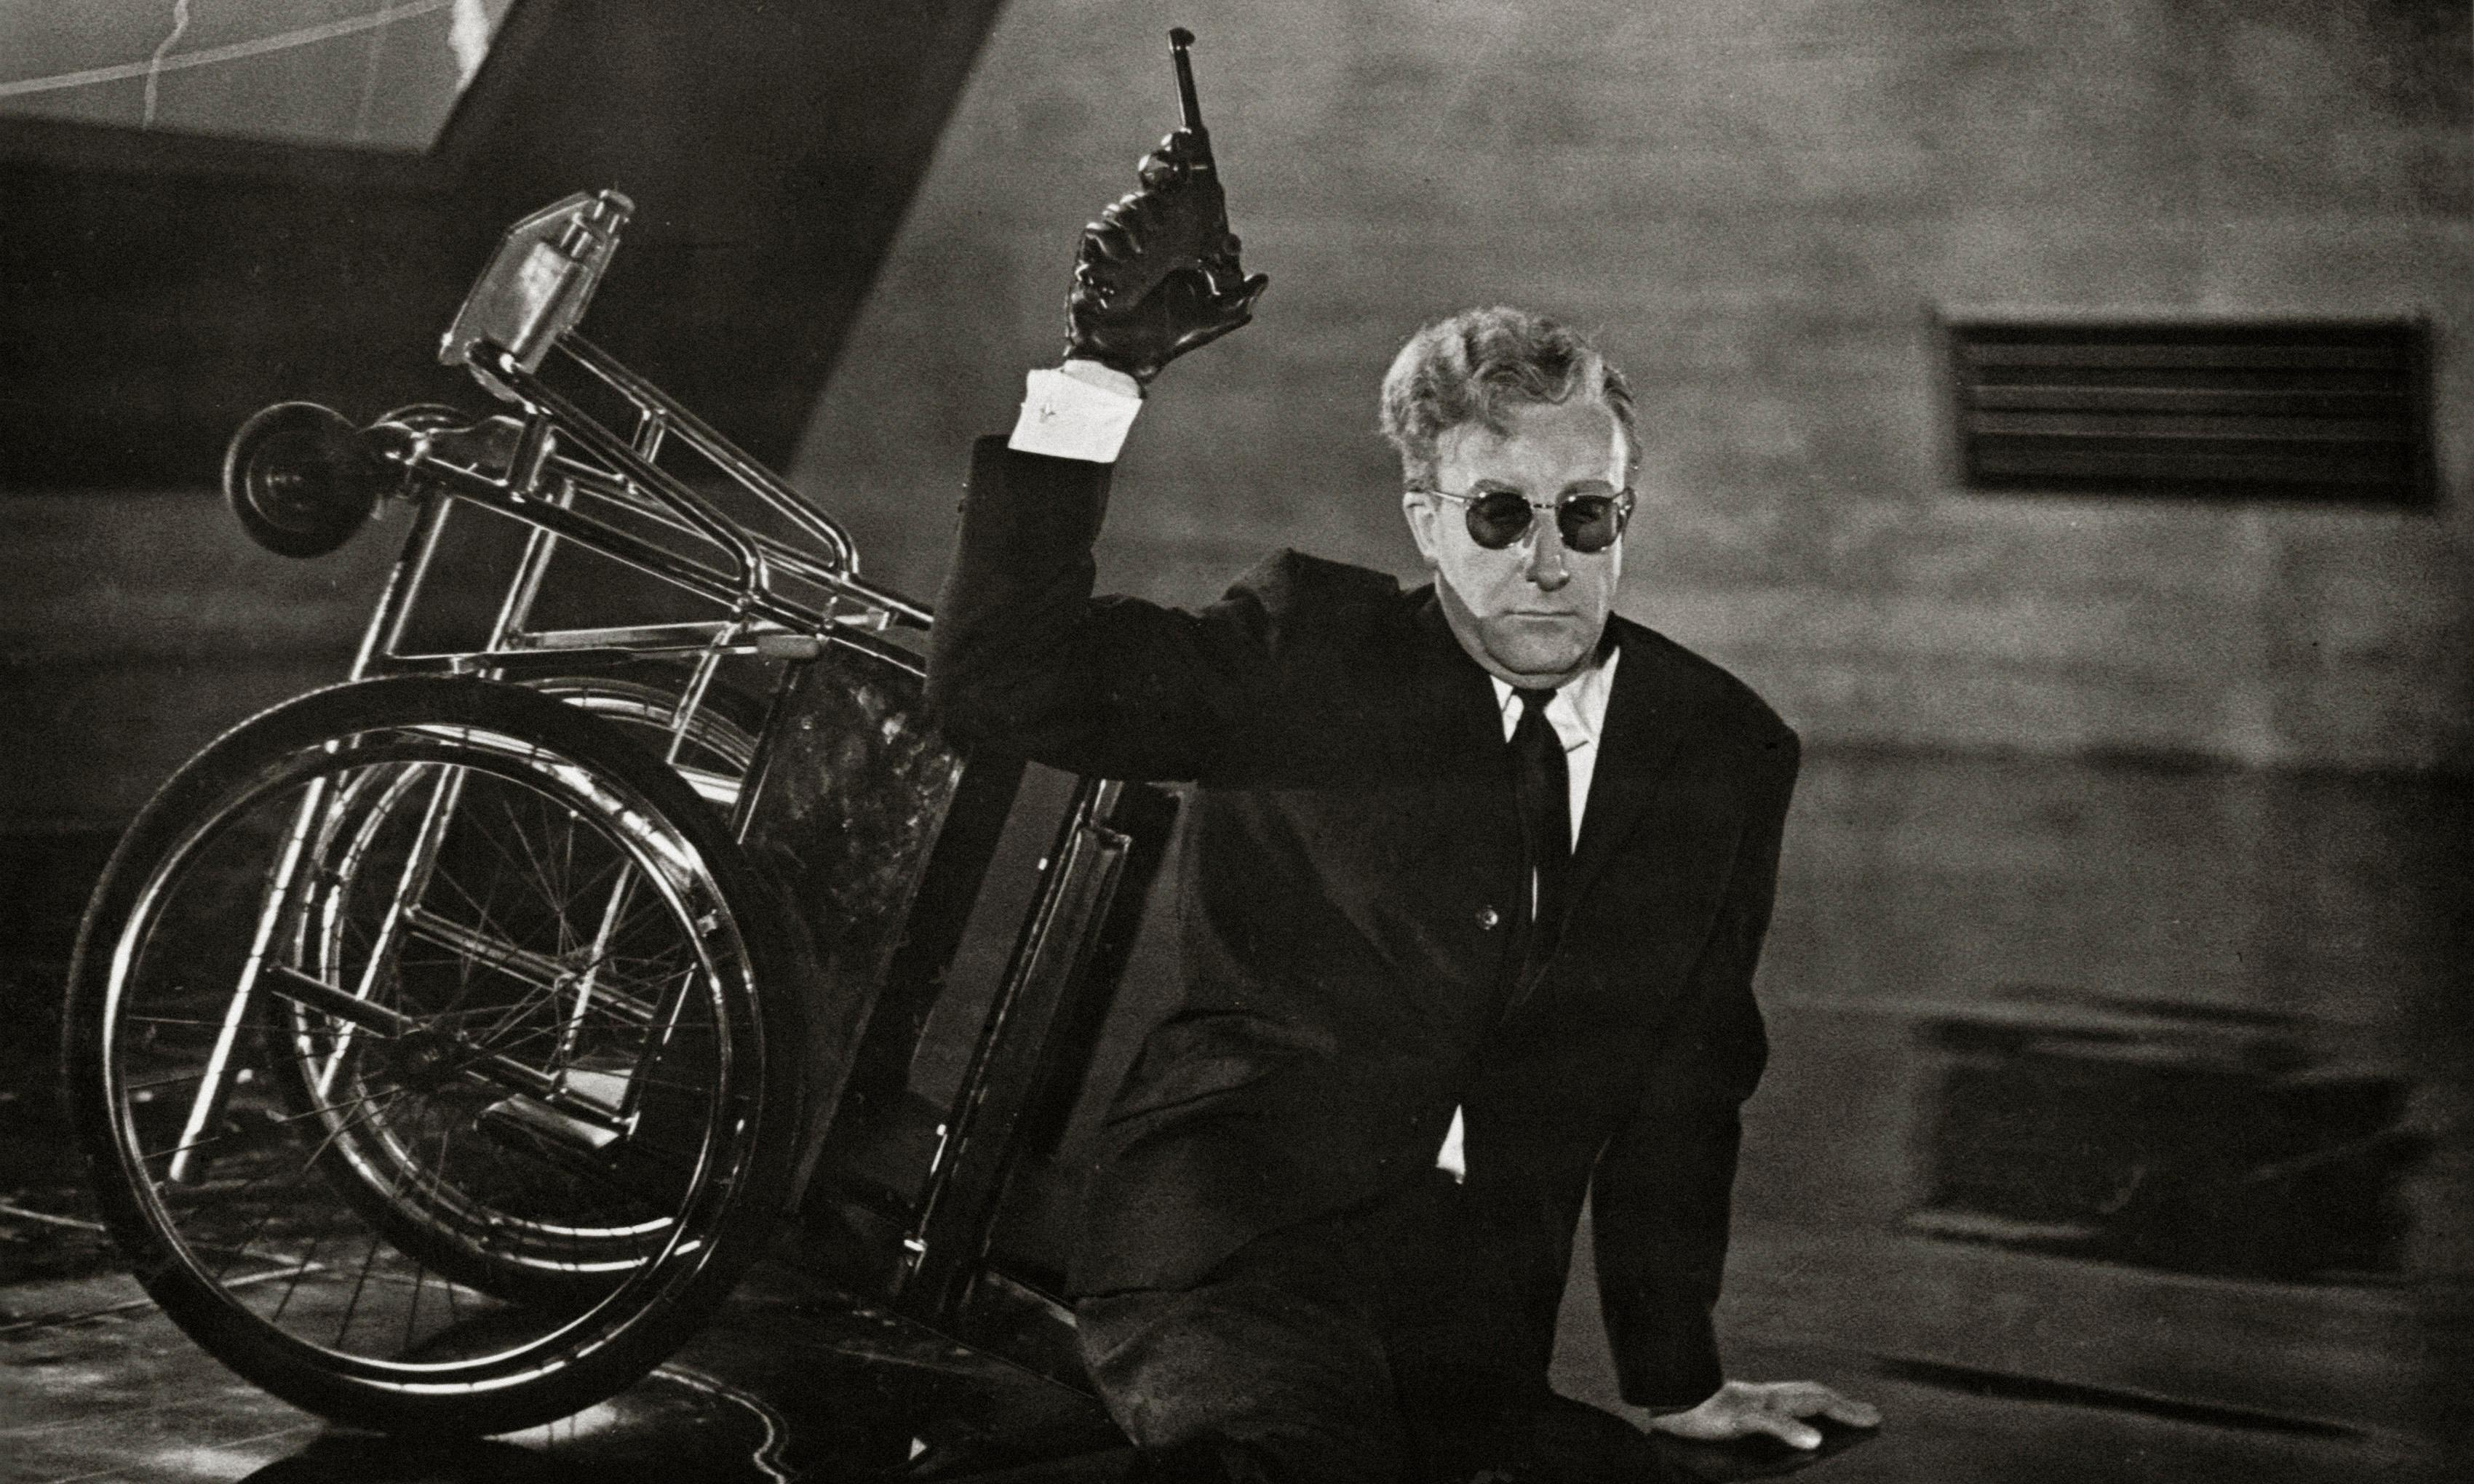 Dr Strangelove, Or How I Learned to Stop Worrying and Love the Bomb review – still a blast